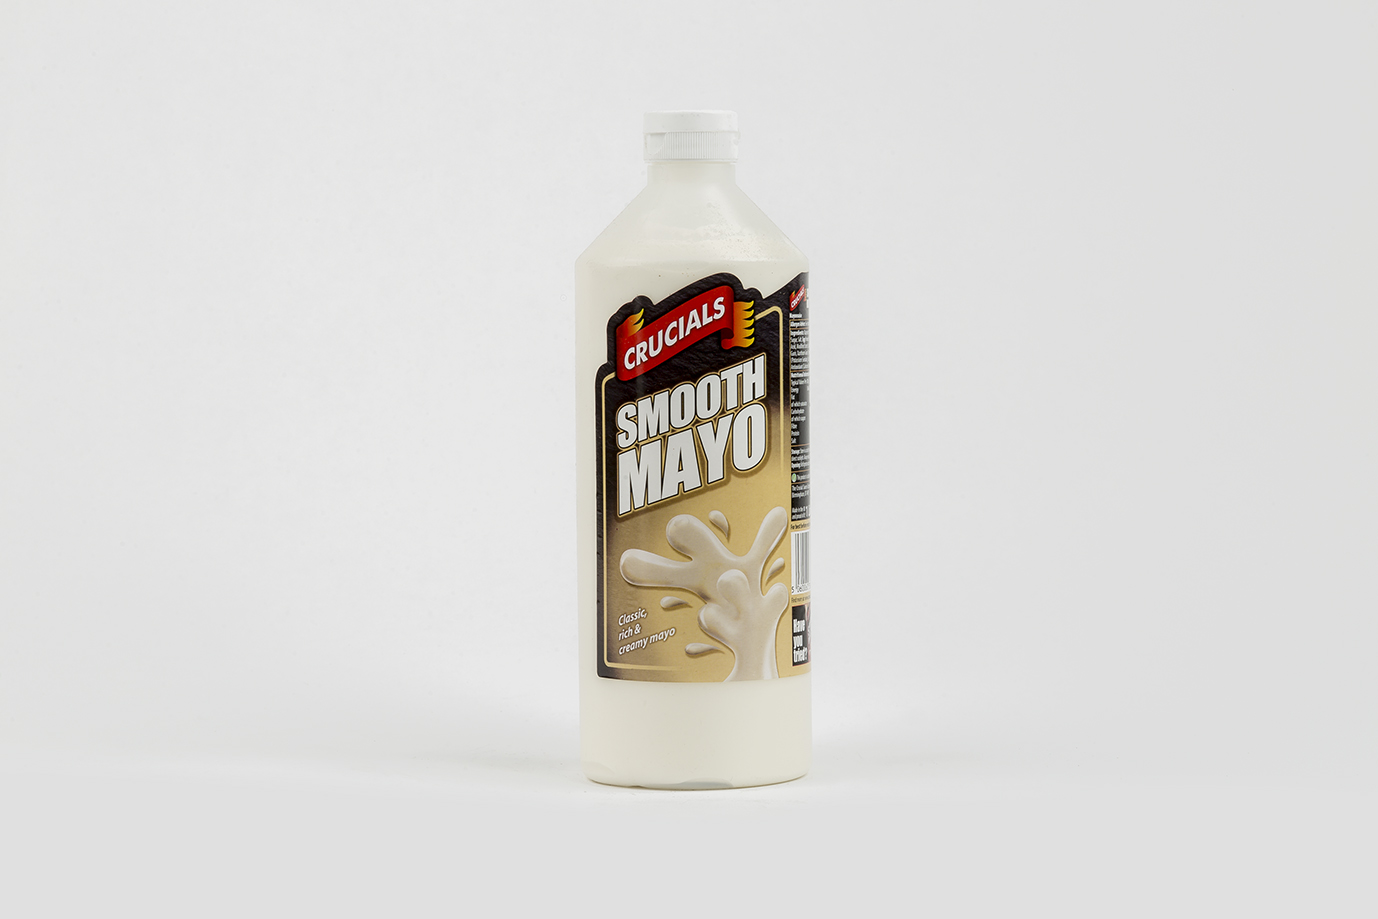 Smooth Mayo 1 Ltr - Crucials - Squeezy Bottle